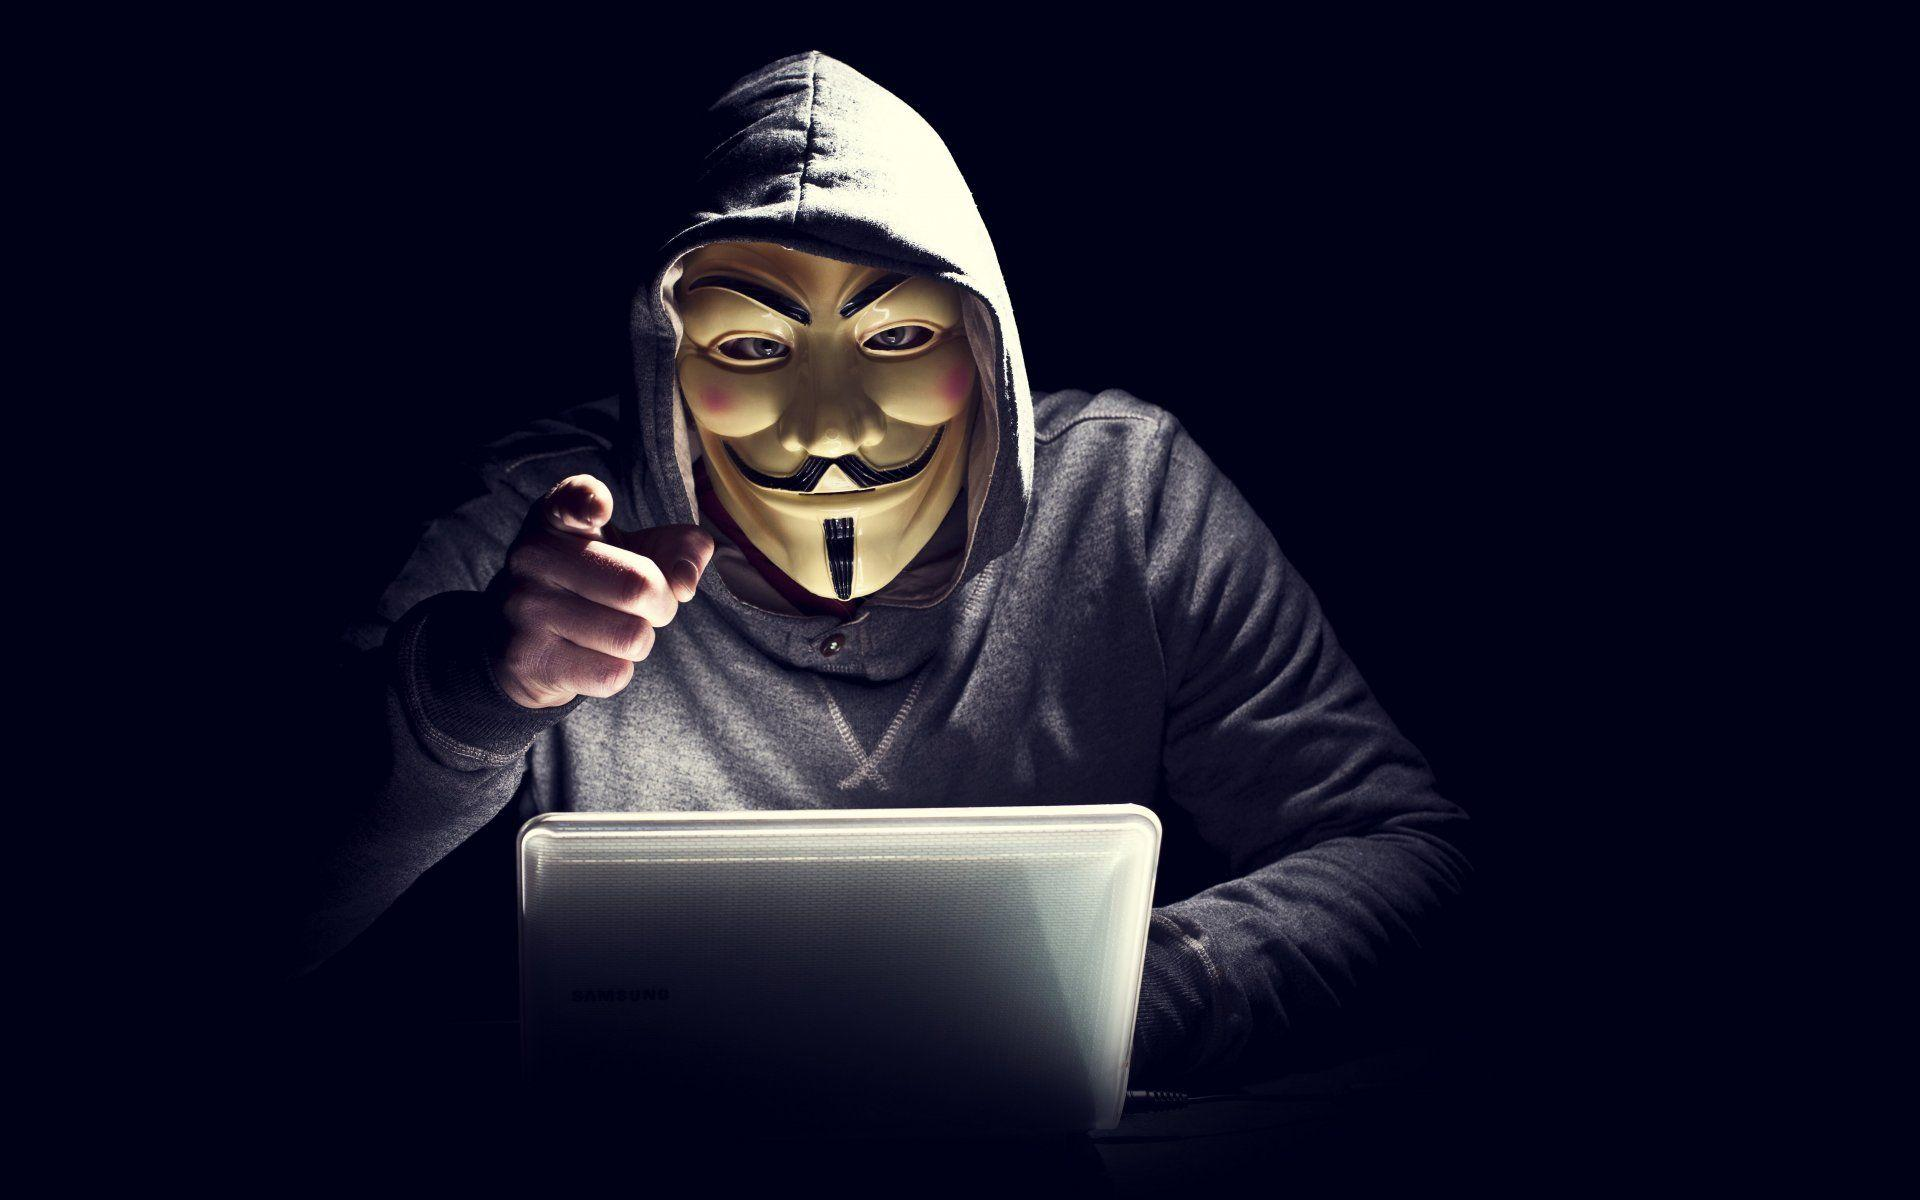 Hacker Mask Wallpapers - Wallpaper Cave